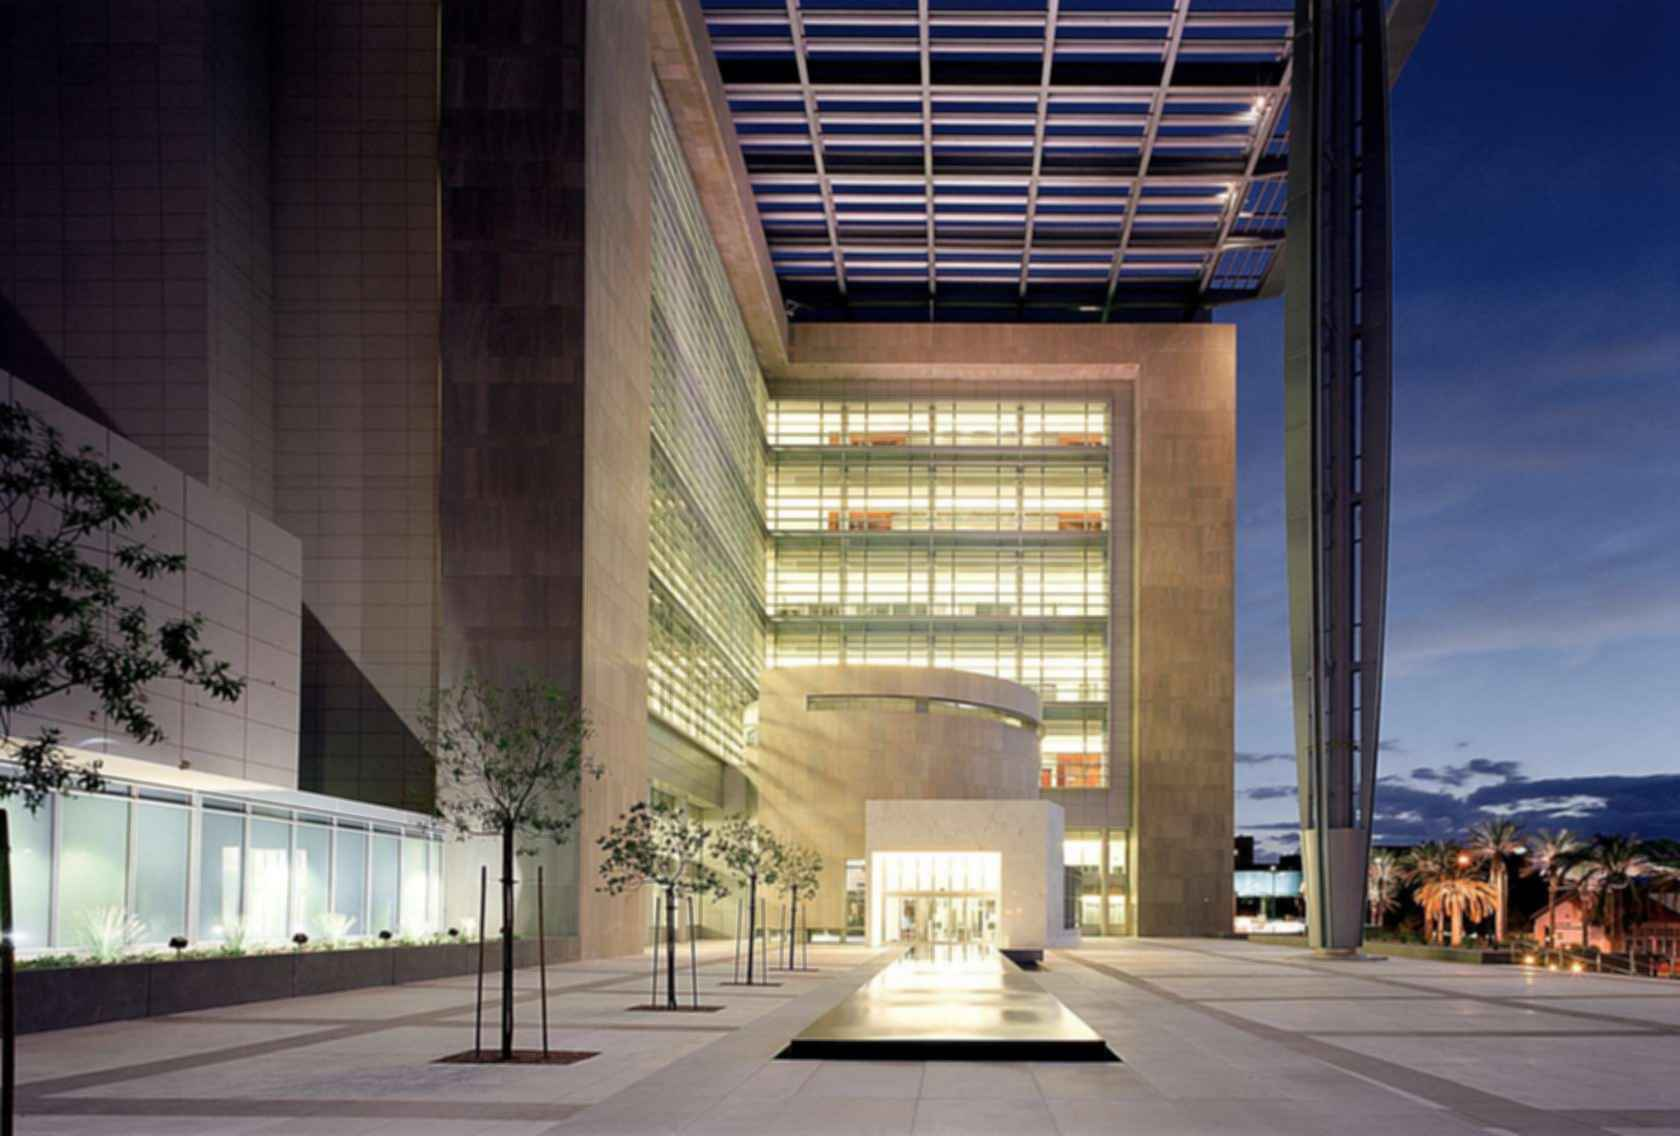 Lloyd D. George U.S. Courthouse and Federal Building - Exterior/Entrance